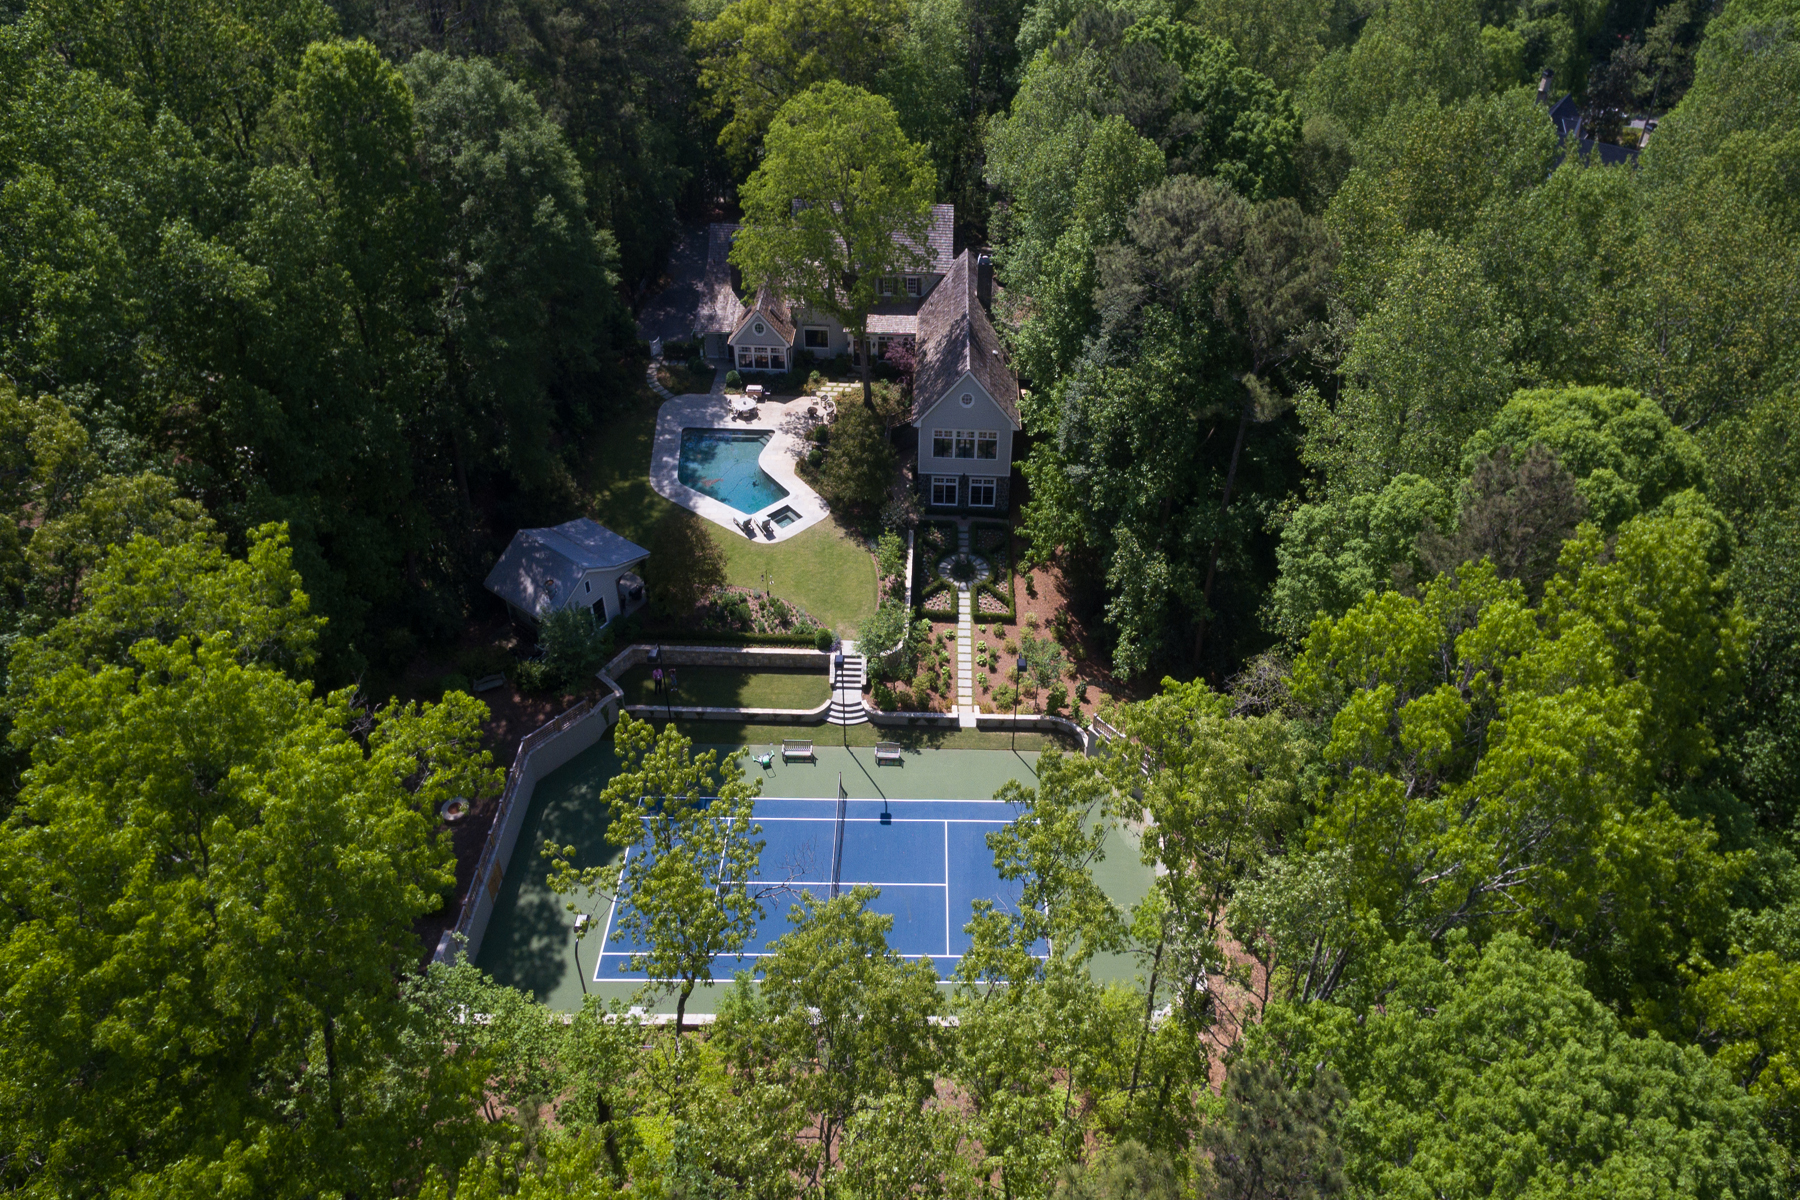 Moradia para Venda às Amazing 4.86 Acre Estate Property With Lighted Tennis Court And Pool 4000 Conway Valley Road NW Buckhead, Atlanta, Geórgia, 30327 Estados Unidos